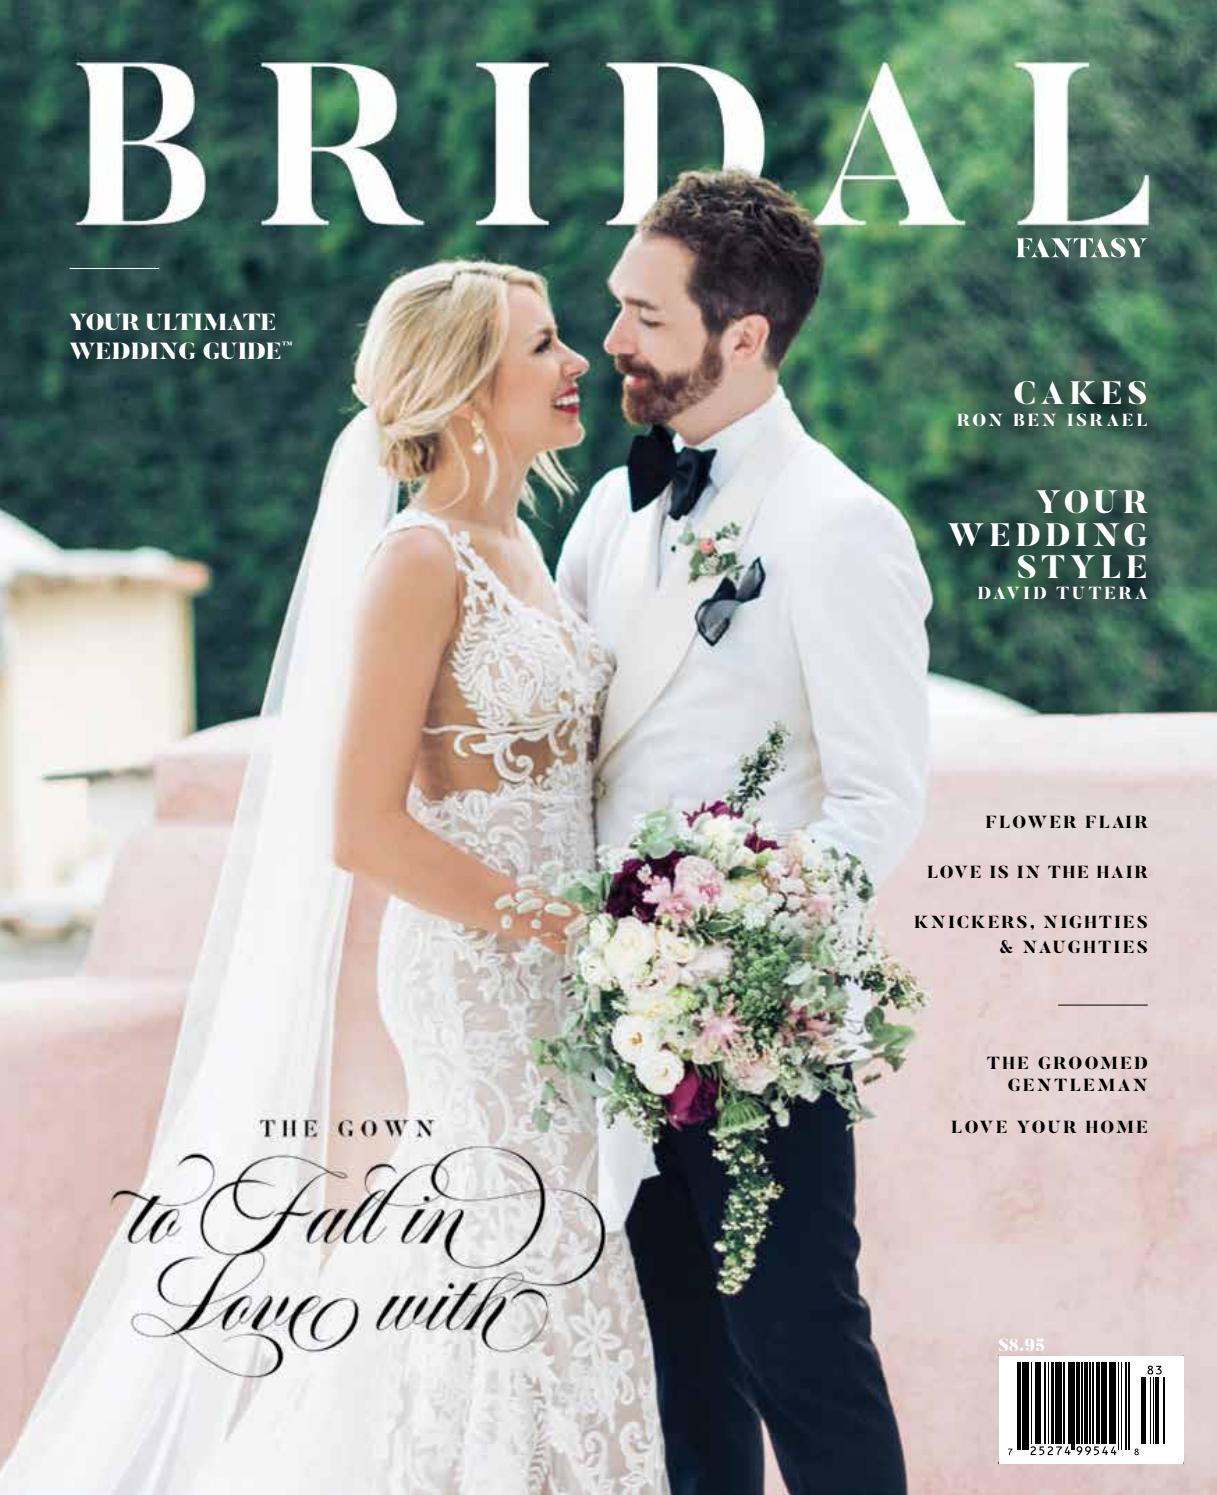 Bridal Fantasy Magazine 2019 By Bridal Fantasy Group Issuu